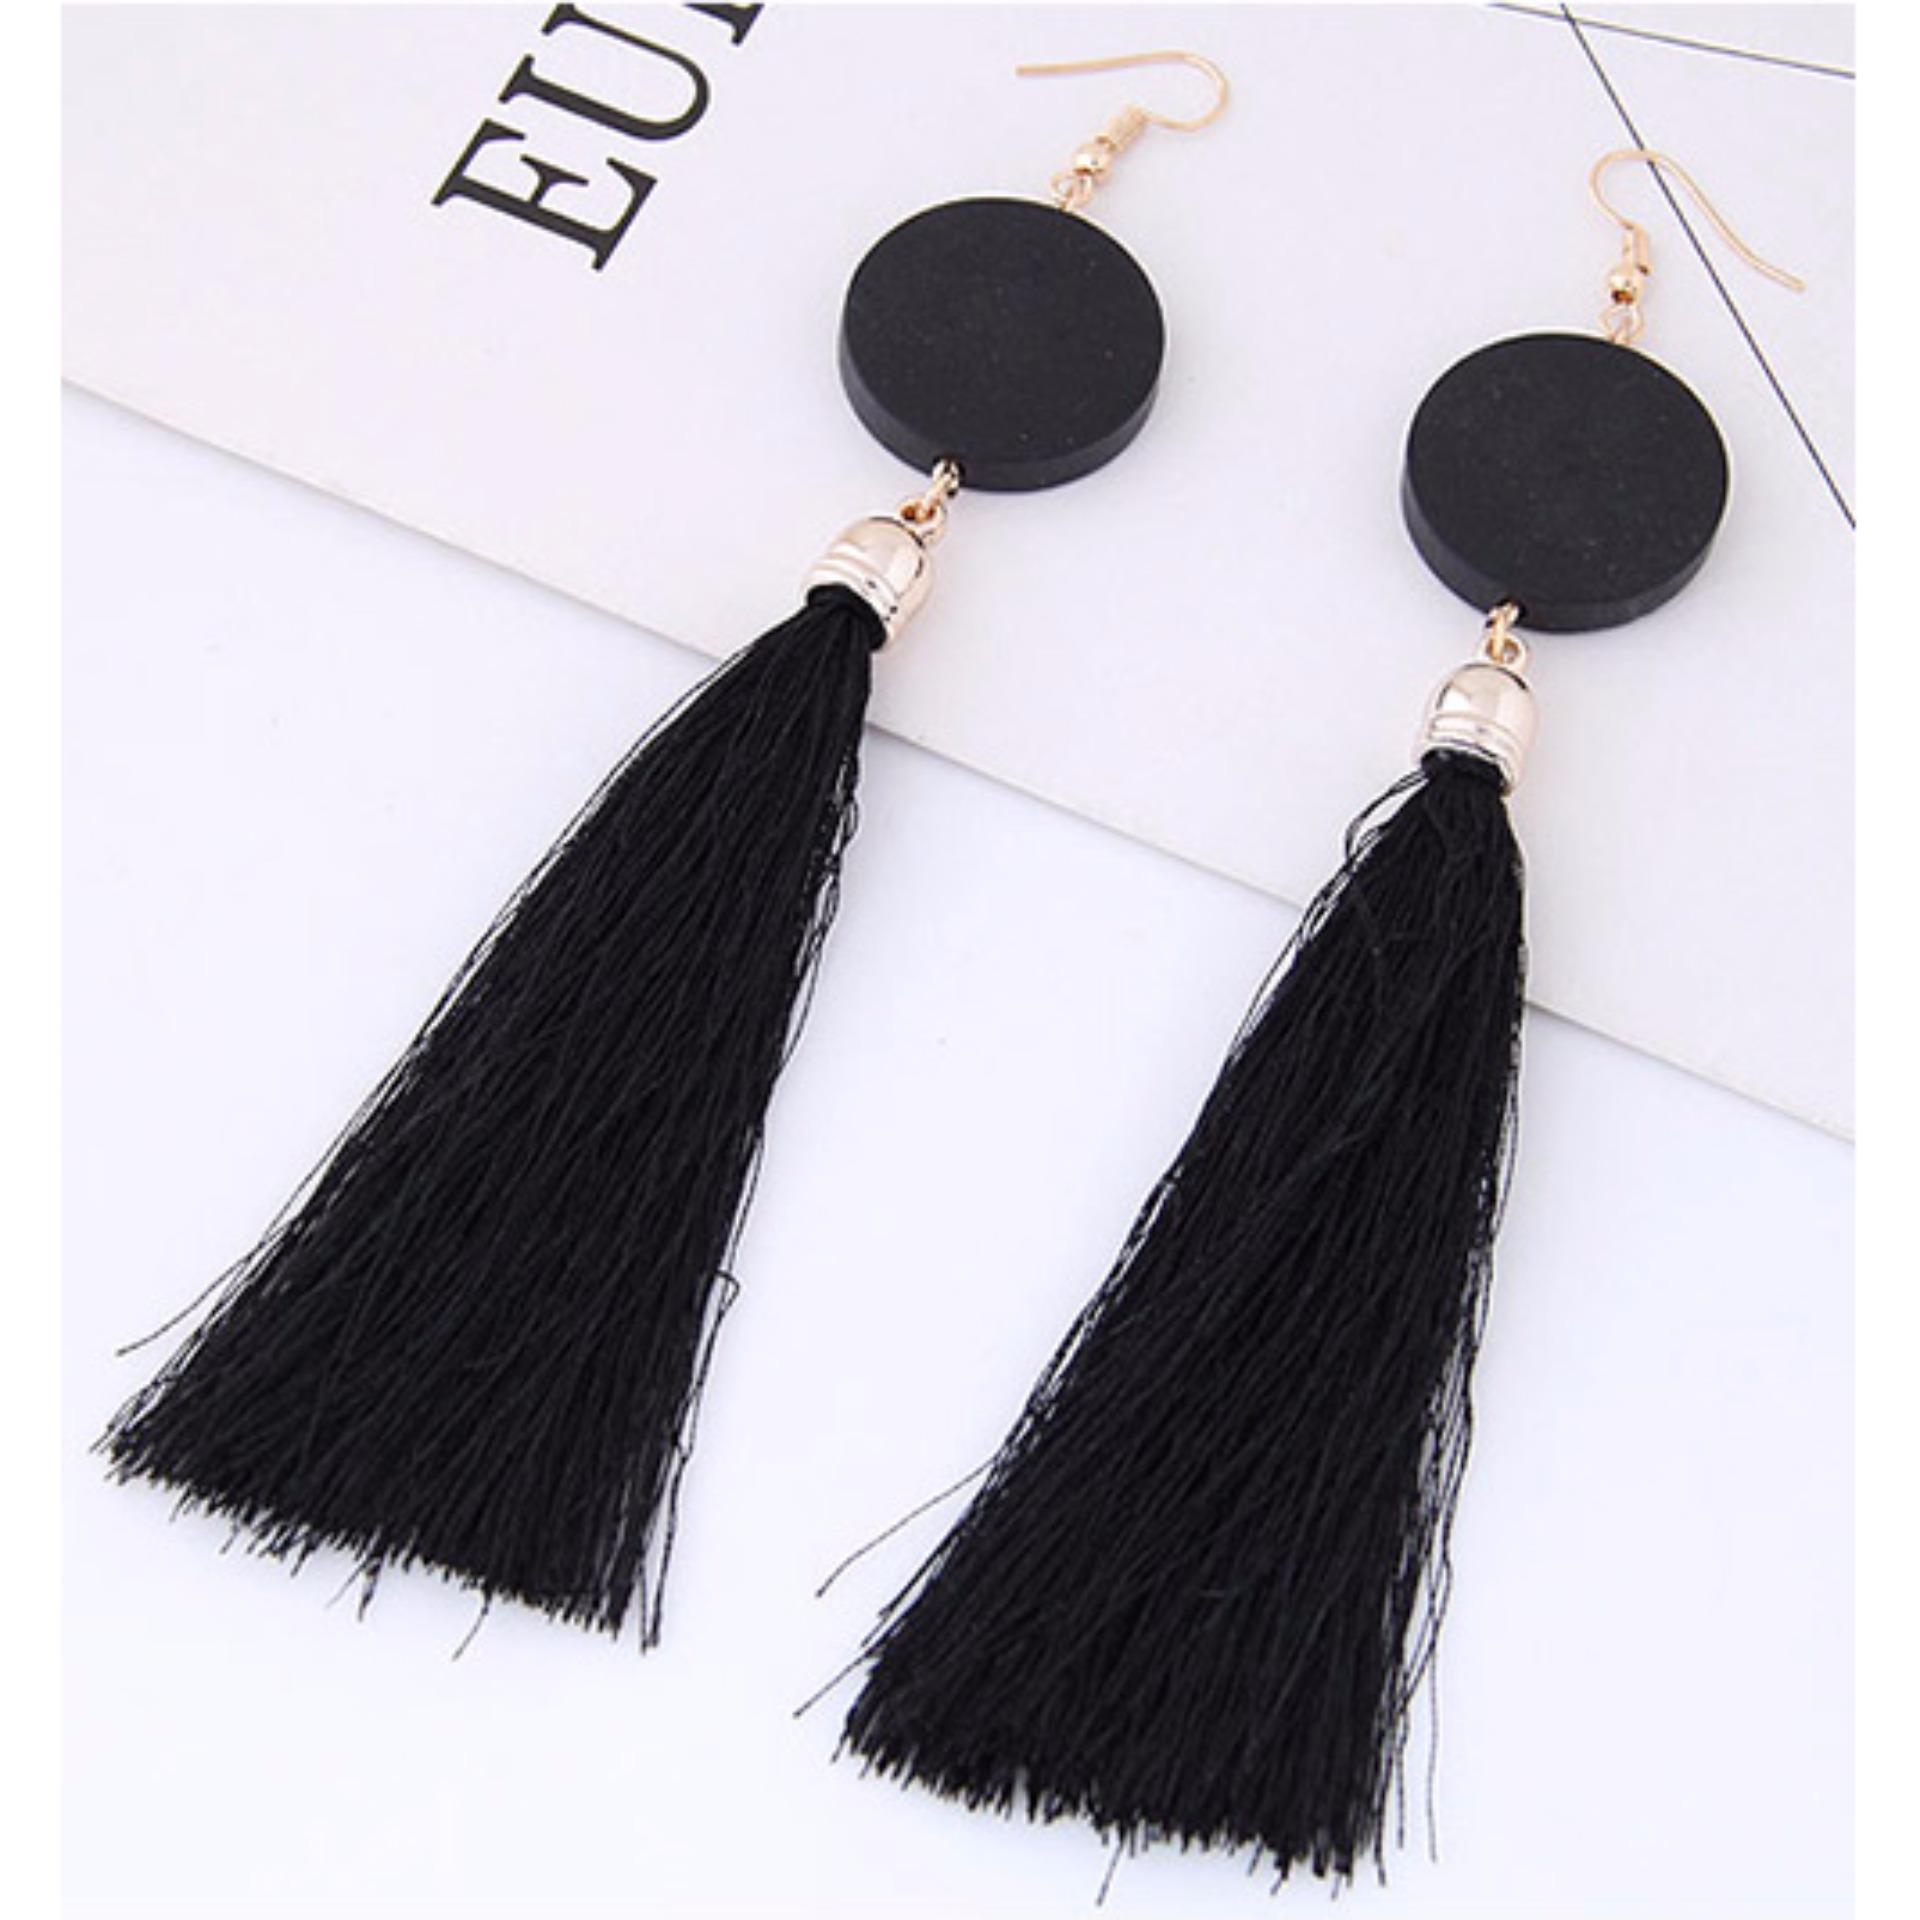 Gambar Salon Gantung Lrc Anting Gantung Elegant Tassel Decorated Earrings